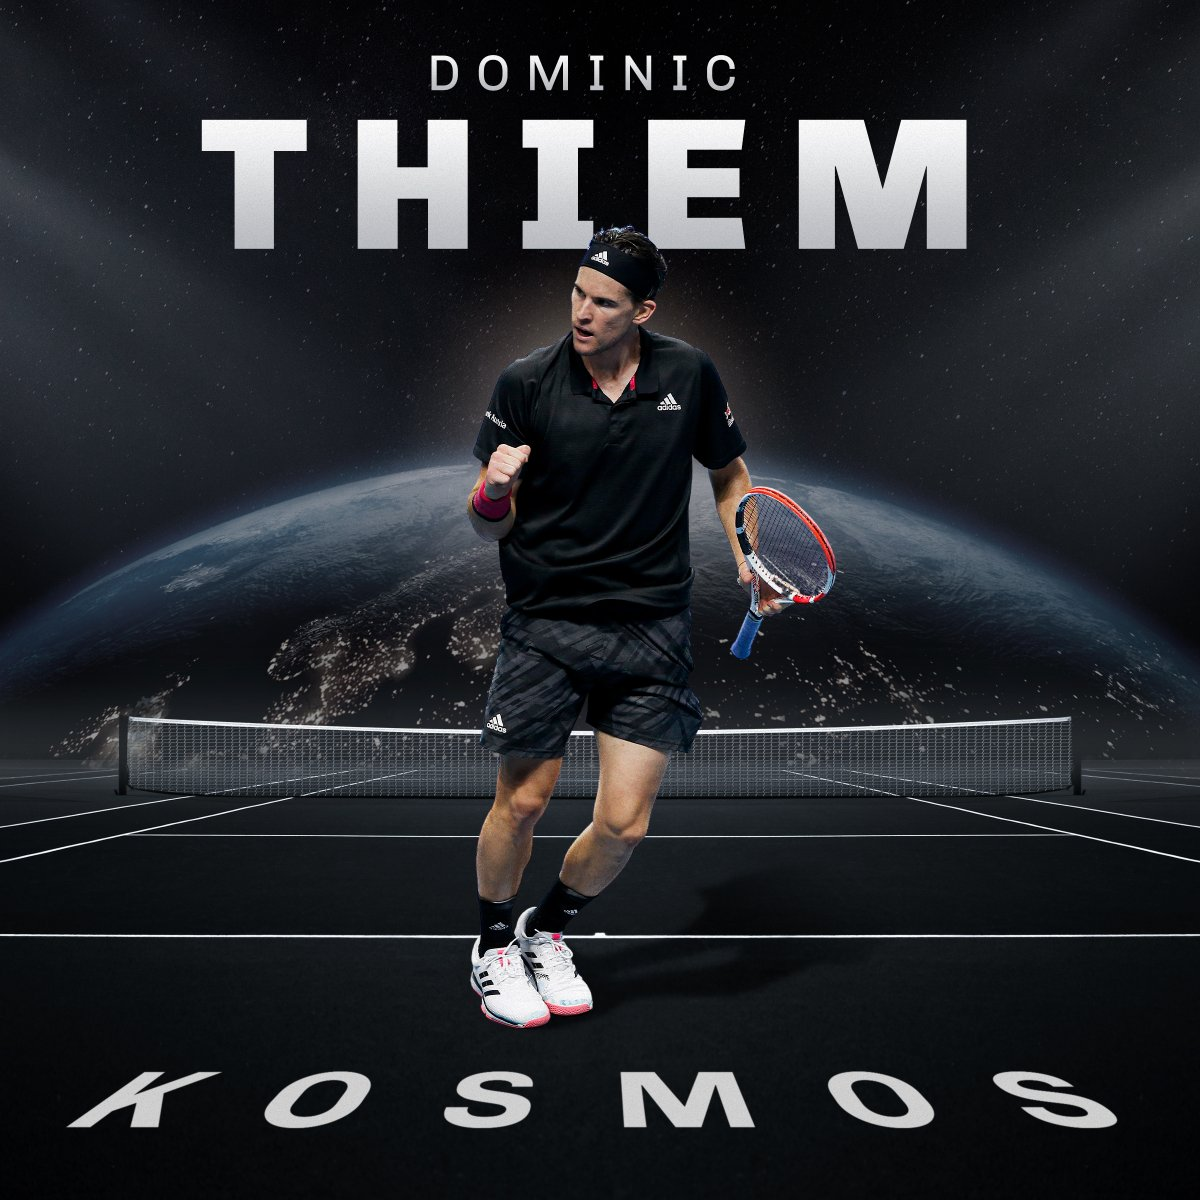 KOSMOS LAUNCHES ATHLETE MANAGEMENT AGENCY 🤝  We are thrilled to announce tennis player Dominic Thiem as the first signing ✍🏻  Welcome on board, @ThiemDomi 🎾! https://t.co/ucT3RVddXa